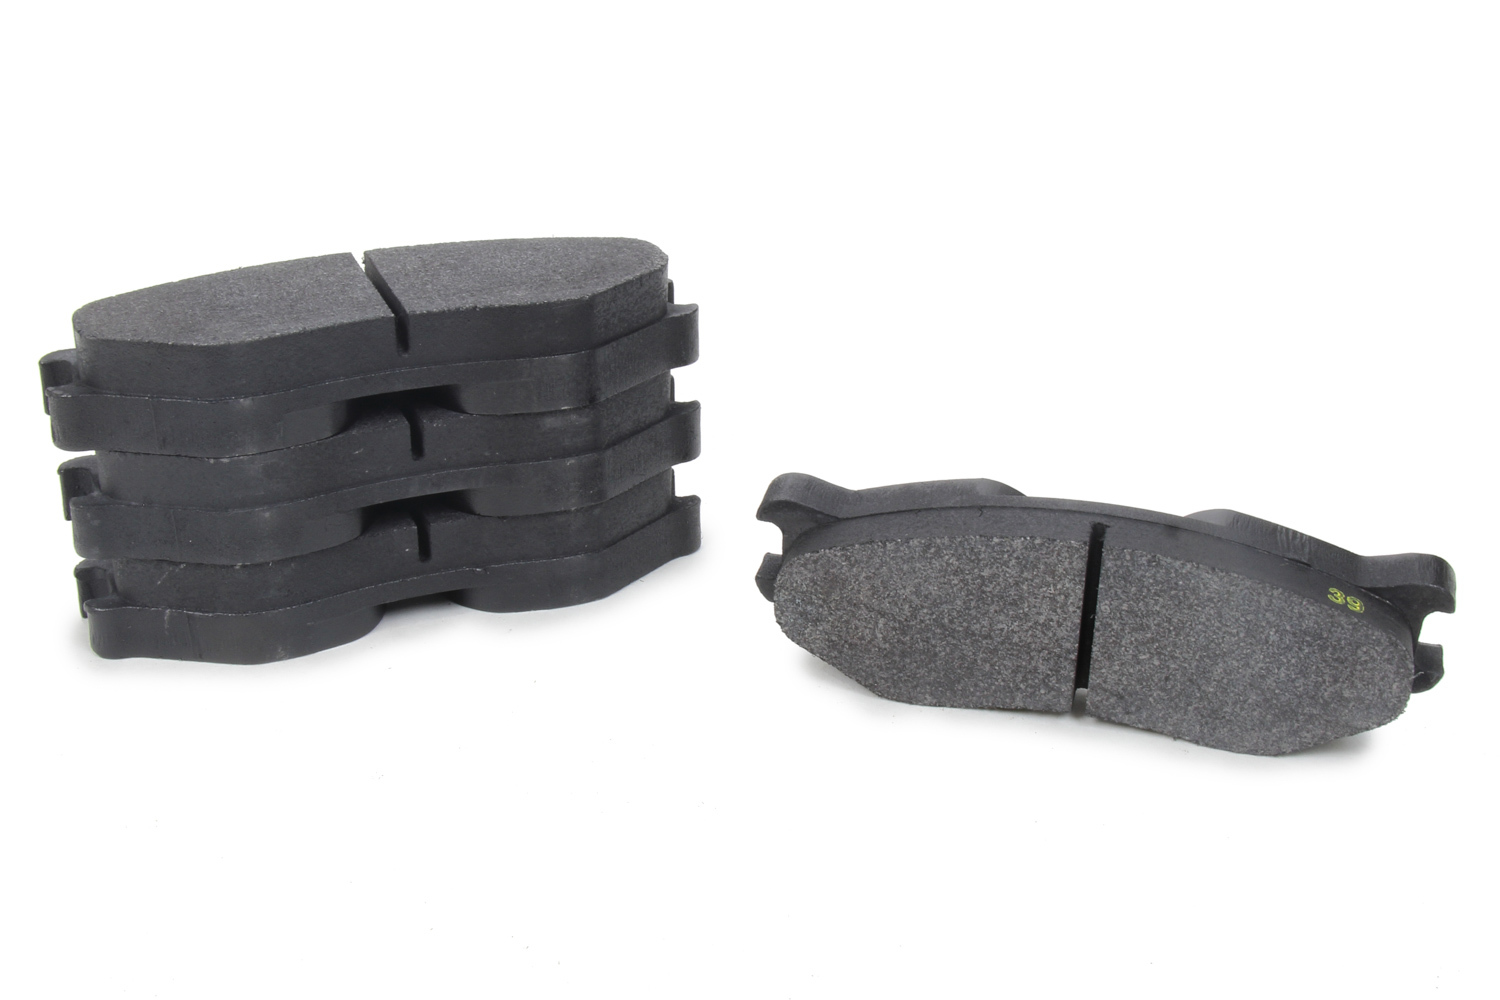 Performance Friction 7905-39-25-44 Brake Pads, Compound 39, High Temperature, 20 mm Thick, ZR94 Calipers, Set of 4